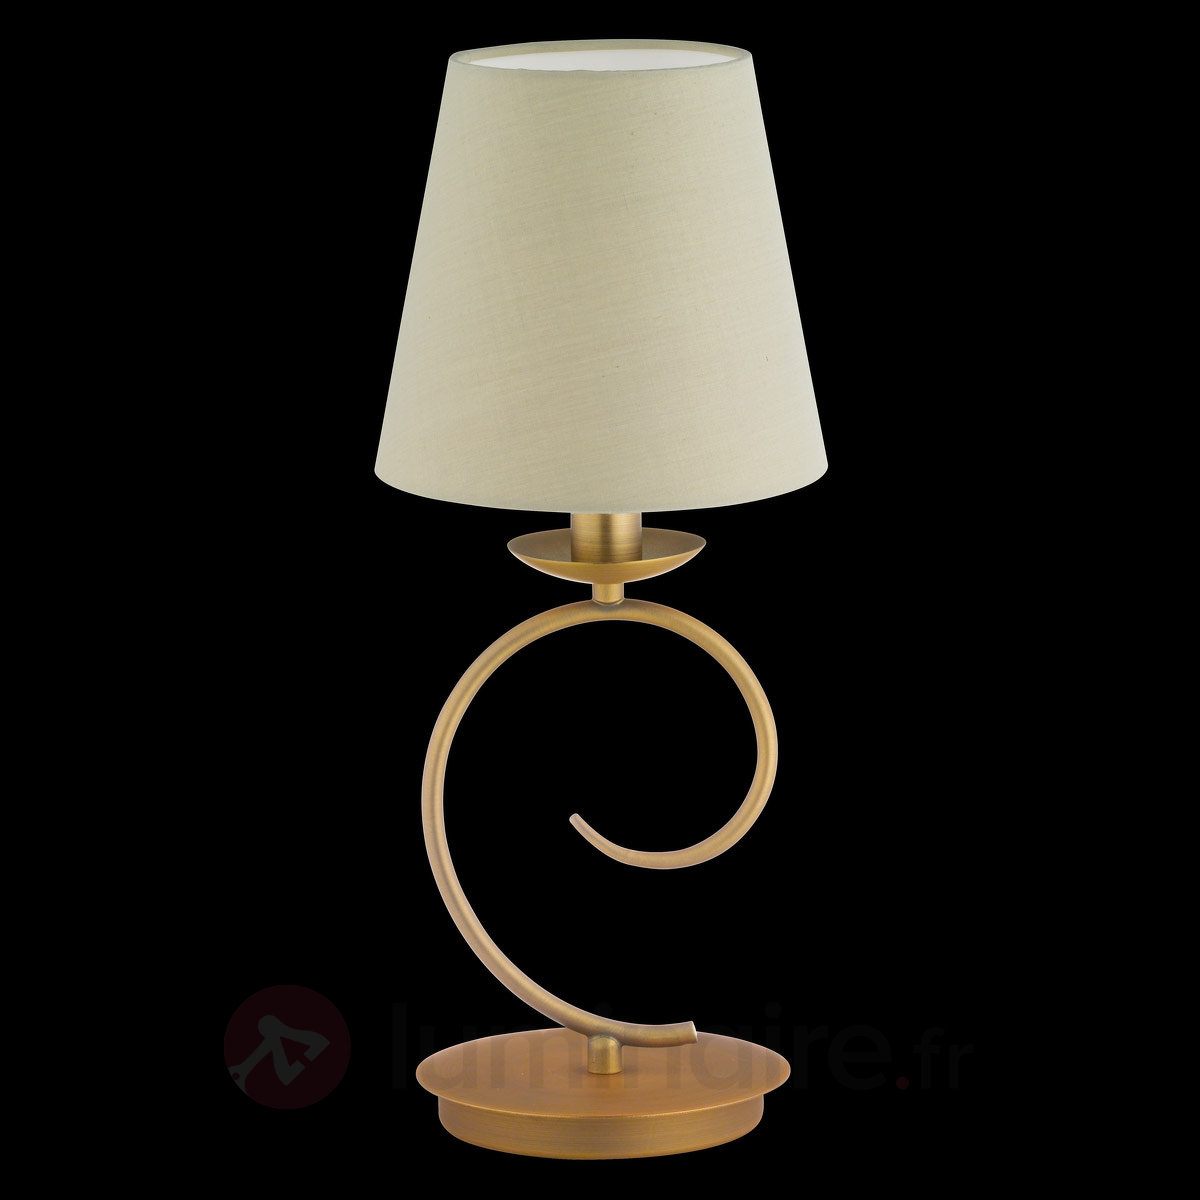 honsel ctwist lampe poser bronze 1 lumi re classiqu. Black Bedroom Furniture Sets. Home Design Ideas